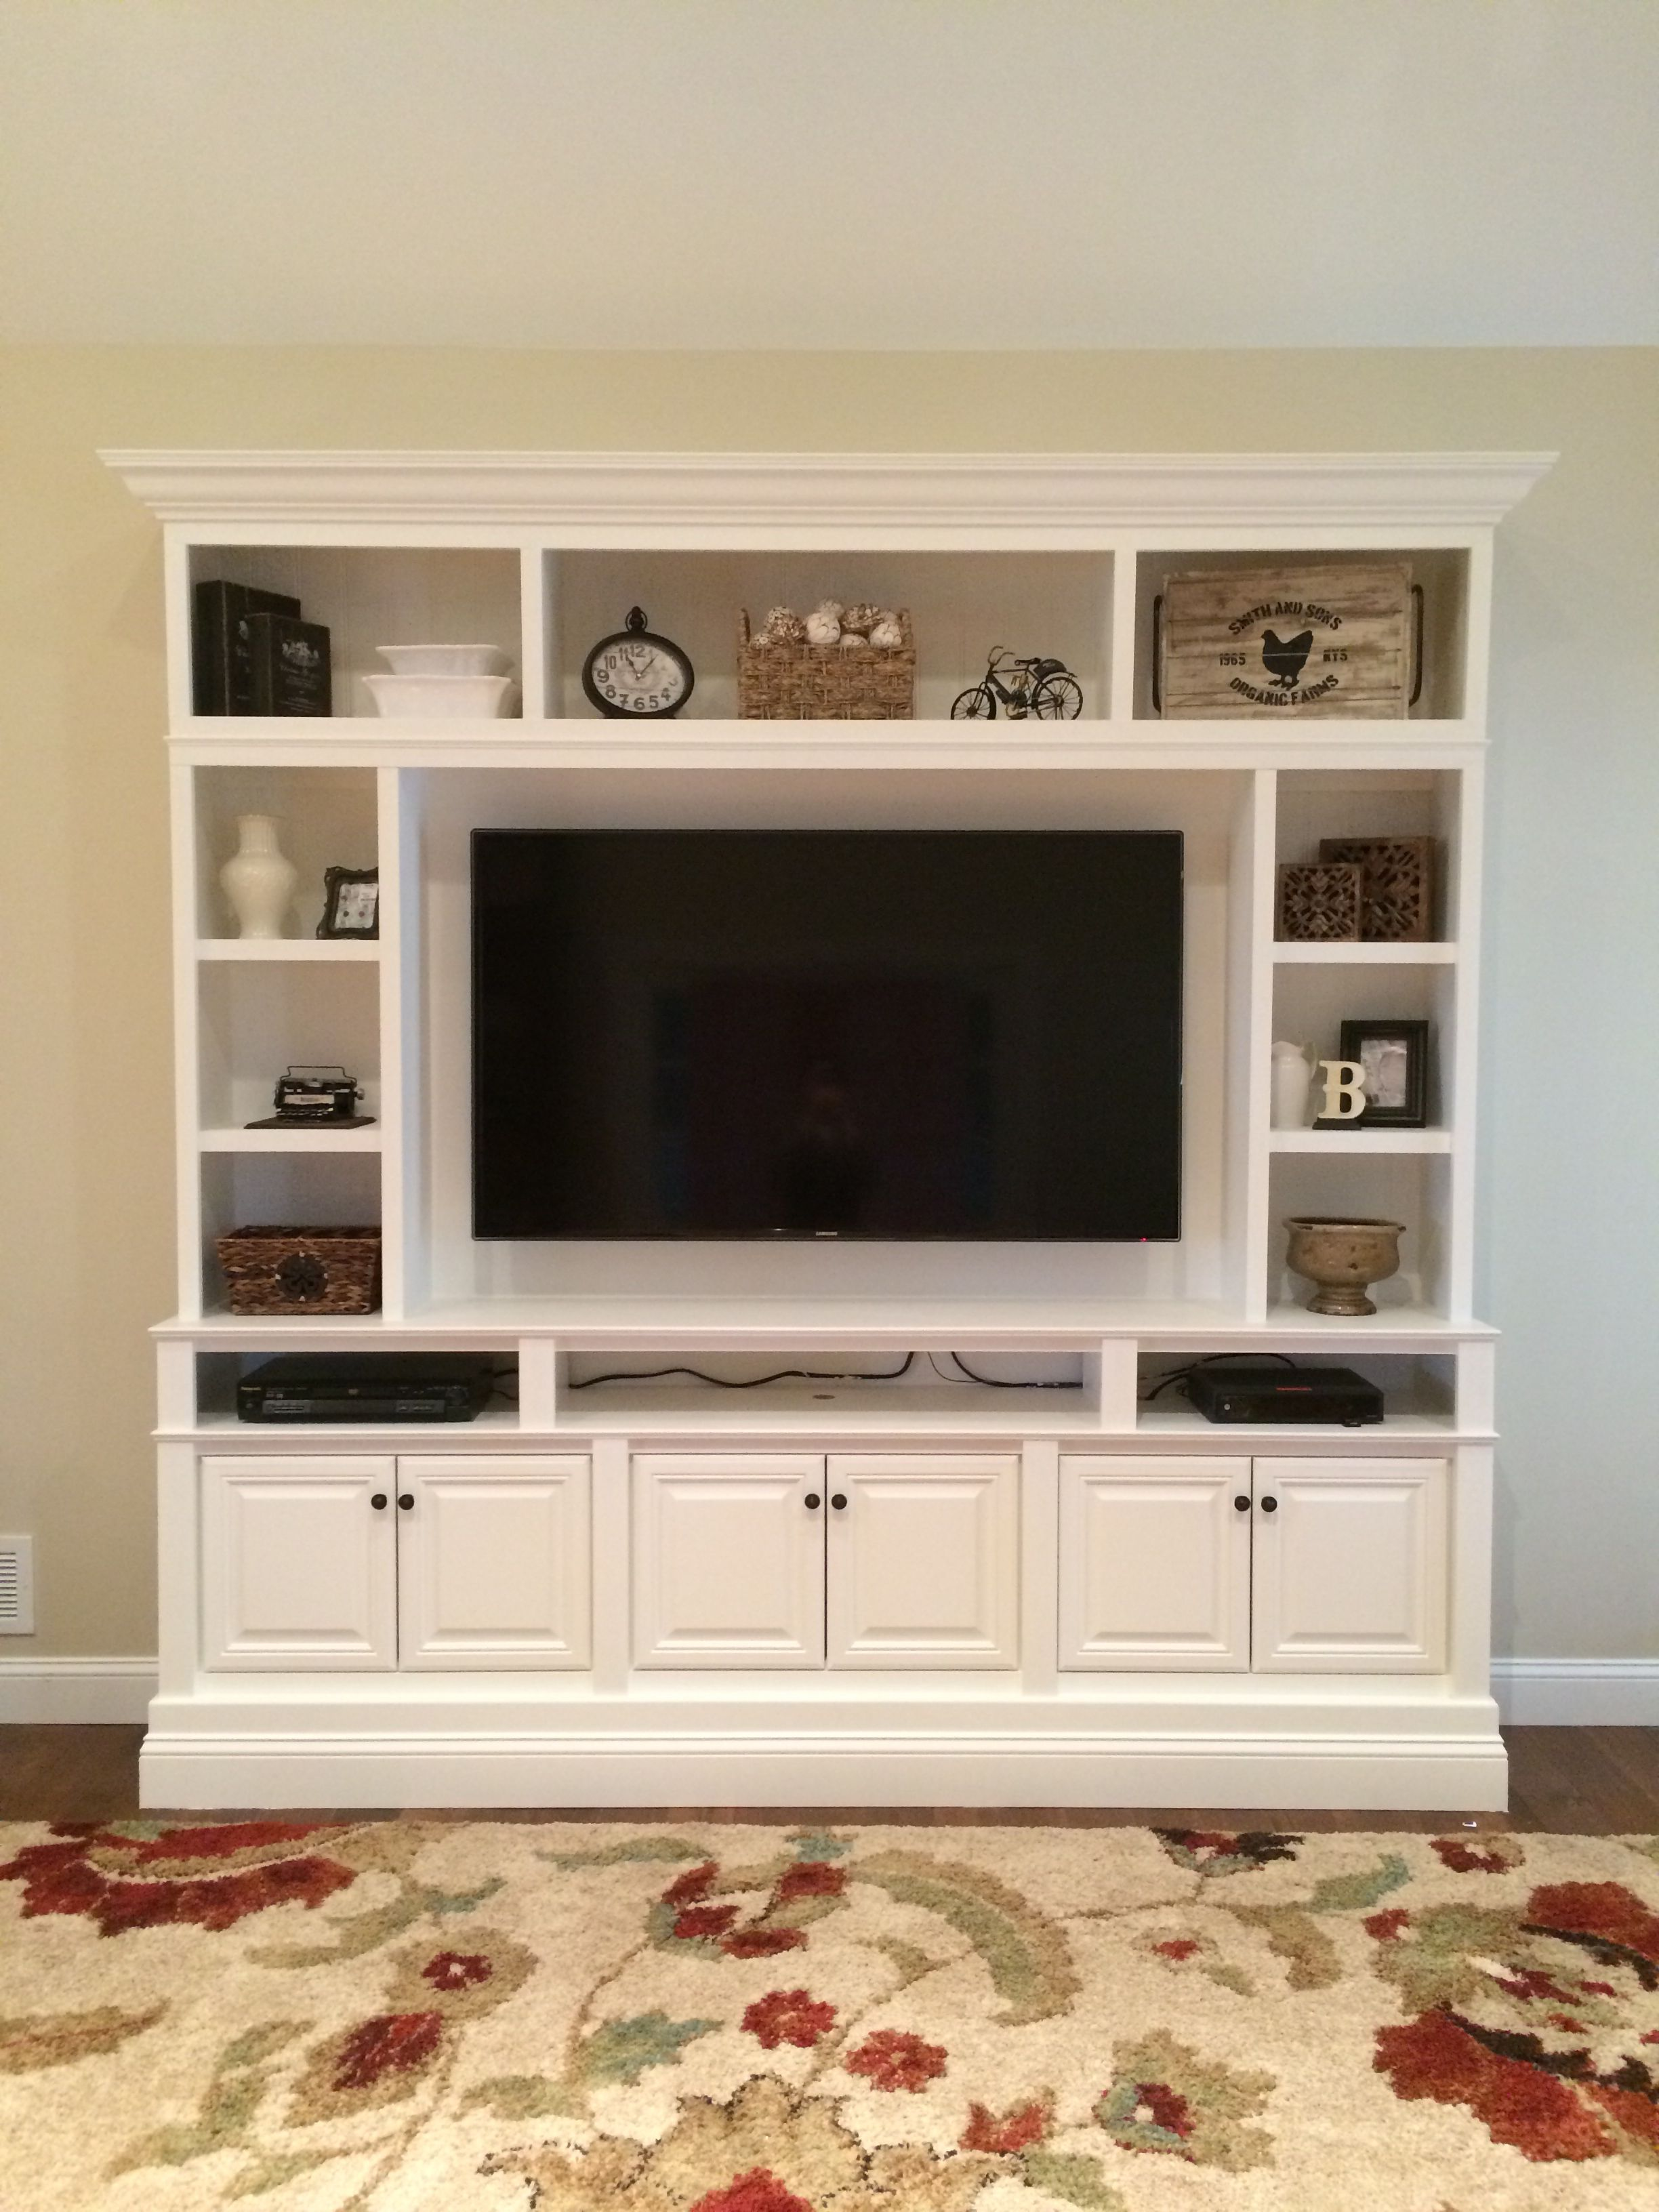 Charmant 17 DIY Entertainment Center Ideas And Designs For Your New Home